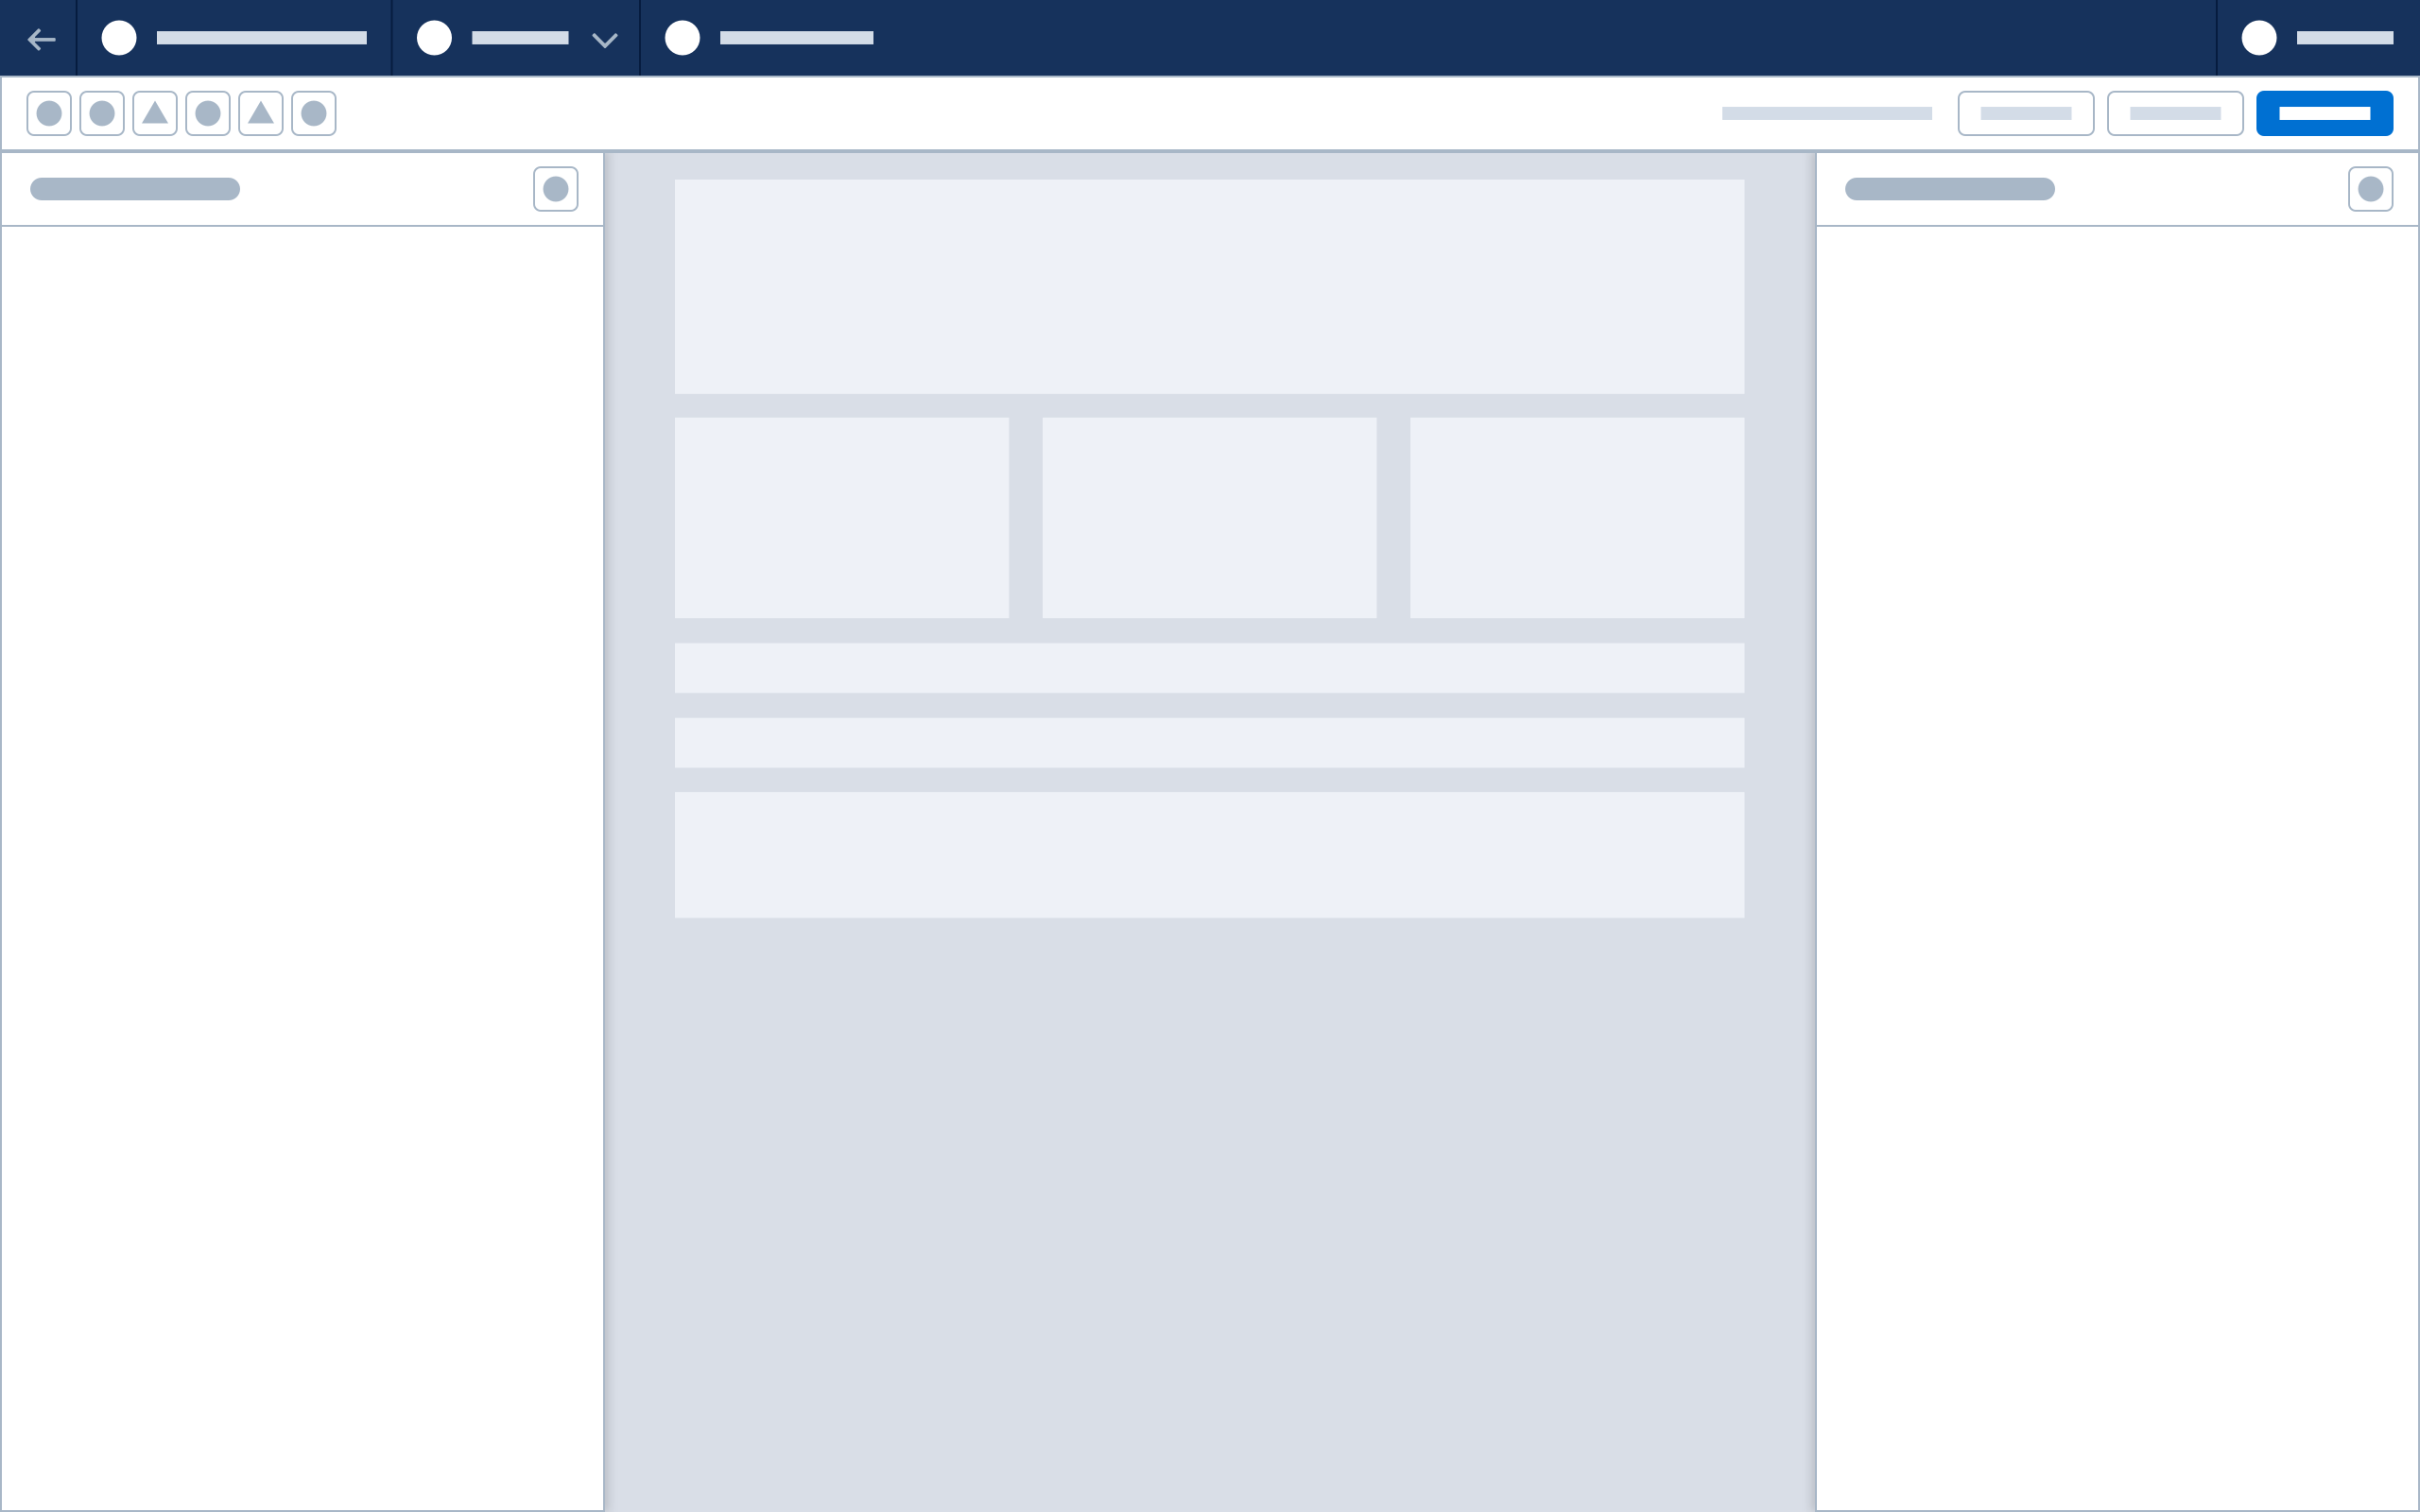 A wireframe showing builder panels.